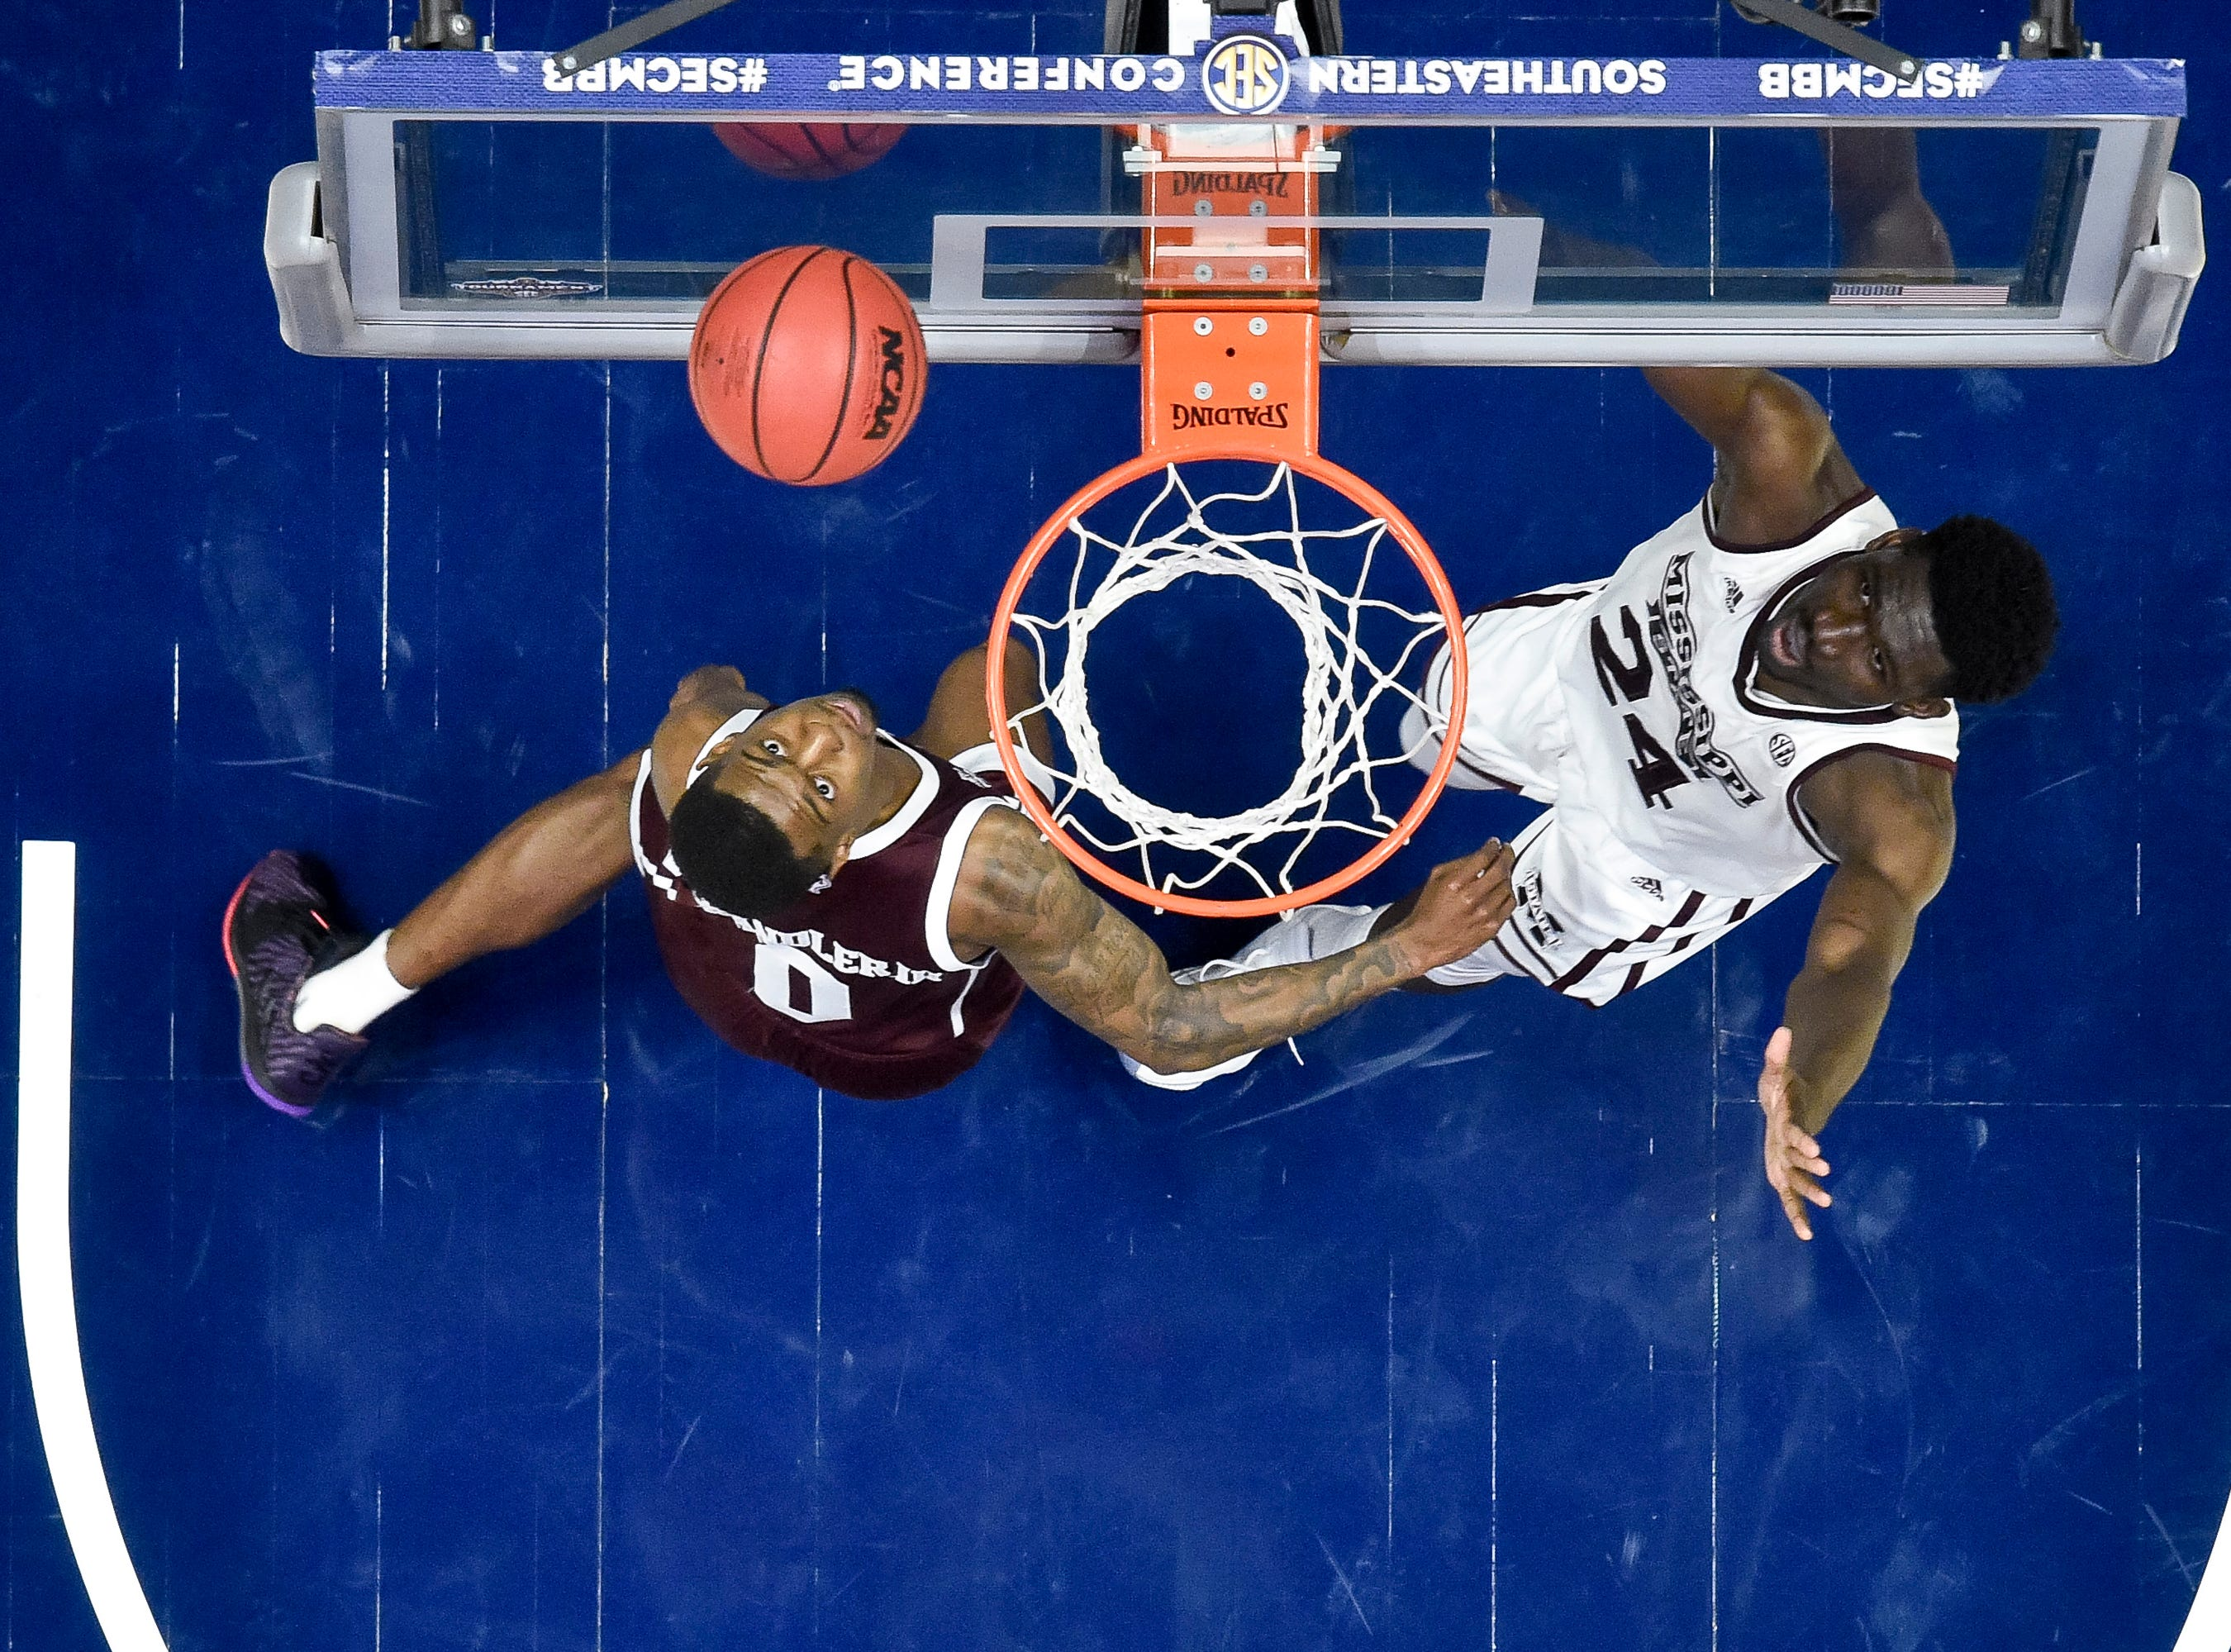 Texas A&M guard Jay Jay Chandler (0) and Mississippi State forward Abdul Ado (24) keep an eye on the ball during the second half of the SEC Men's Basketball Tournament game at Bridgestone Arena in Nashville, Tenn., Thursday, March 14, 2019.